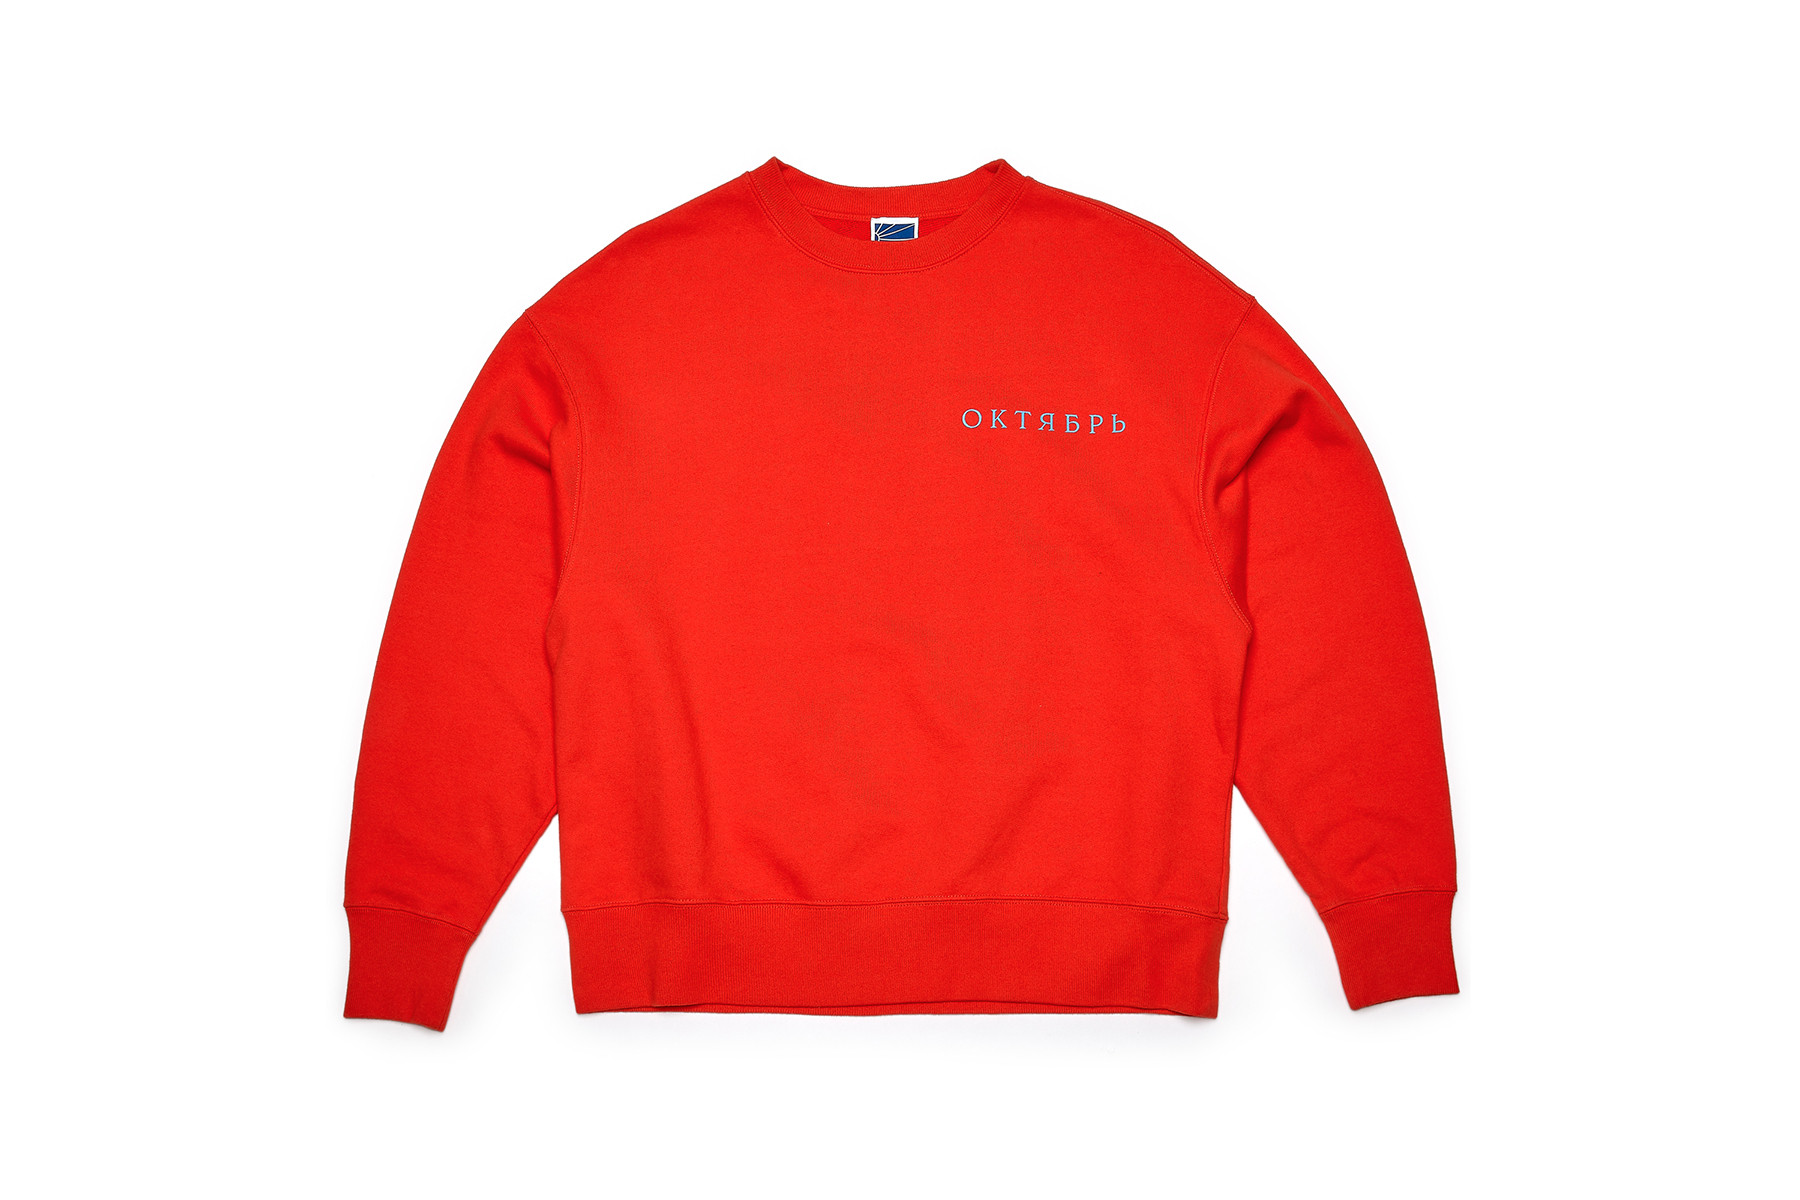 Gosha Rubchinskiy Reveals First Rassvet Collaboration